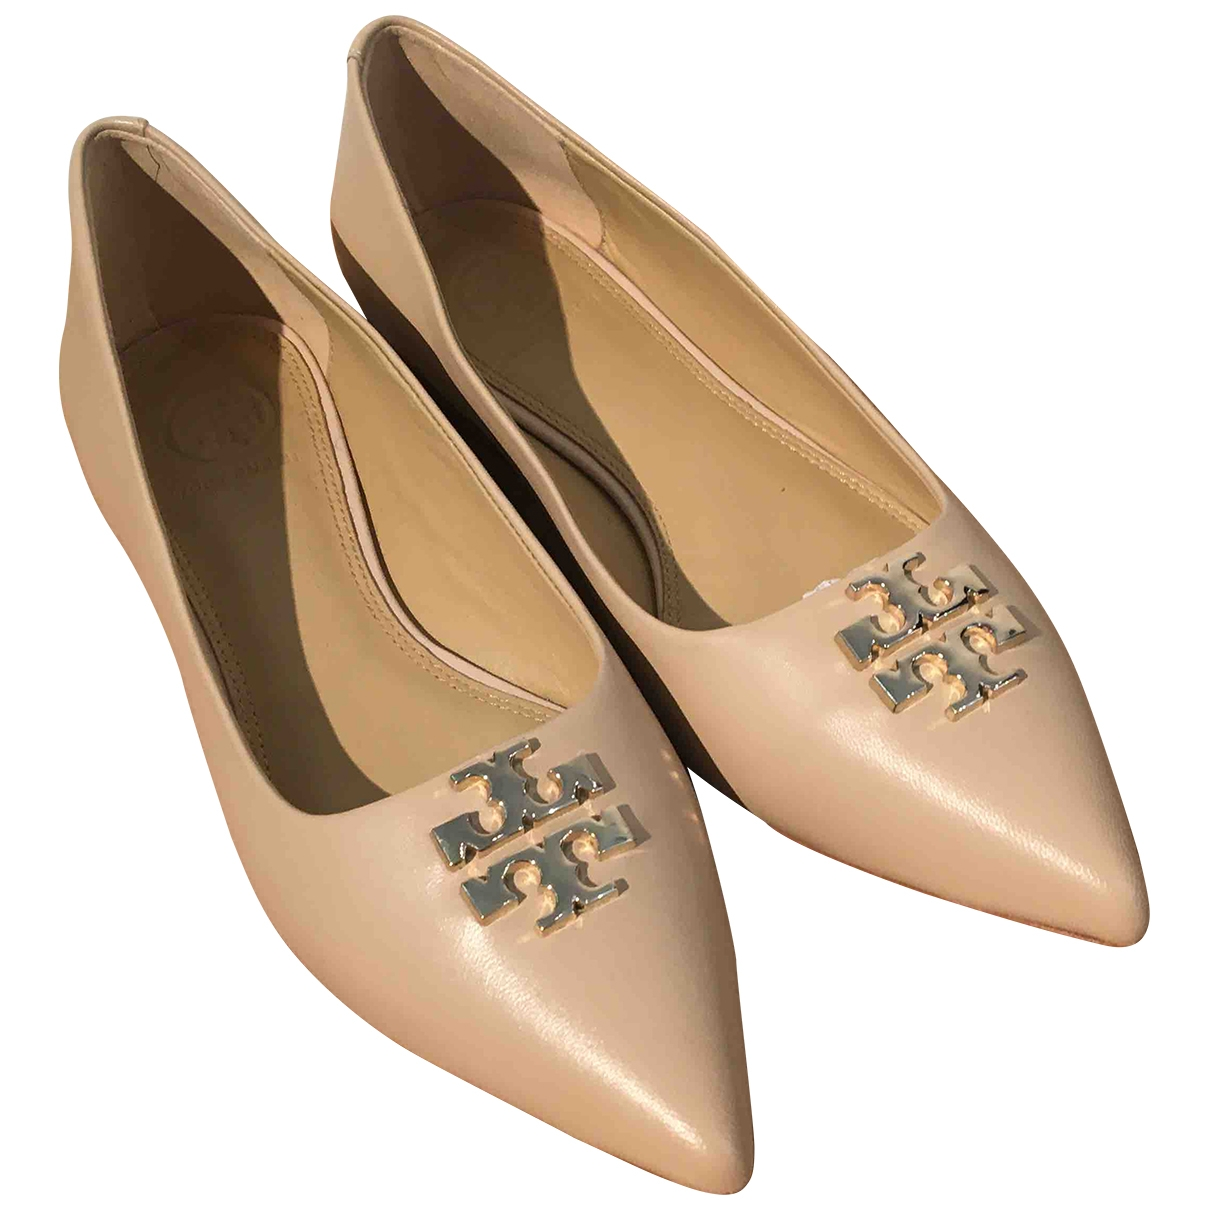 Tory Burch \N Beige Leather Ballet flats for Women 7 US